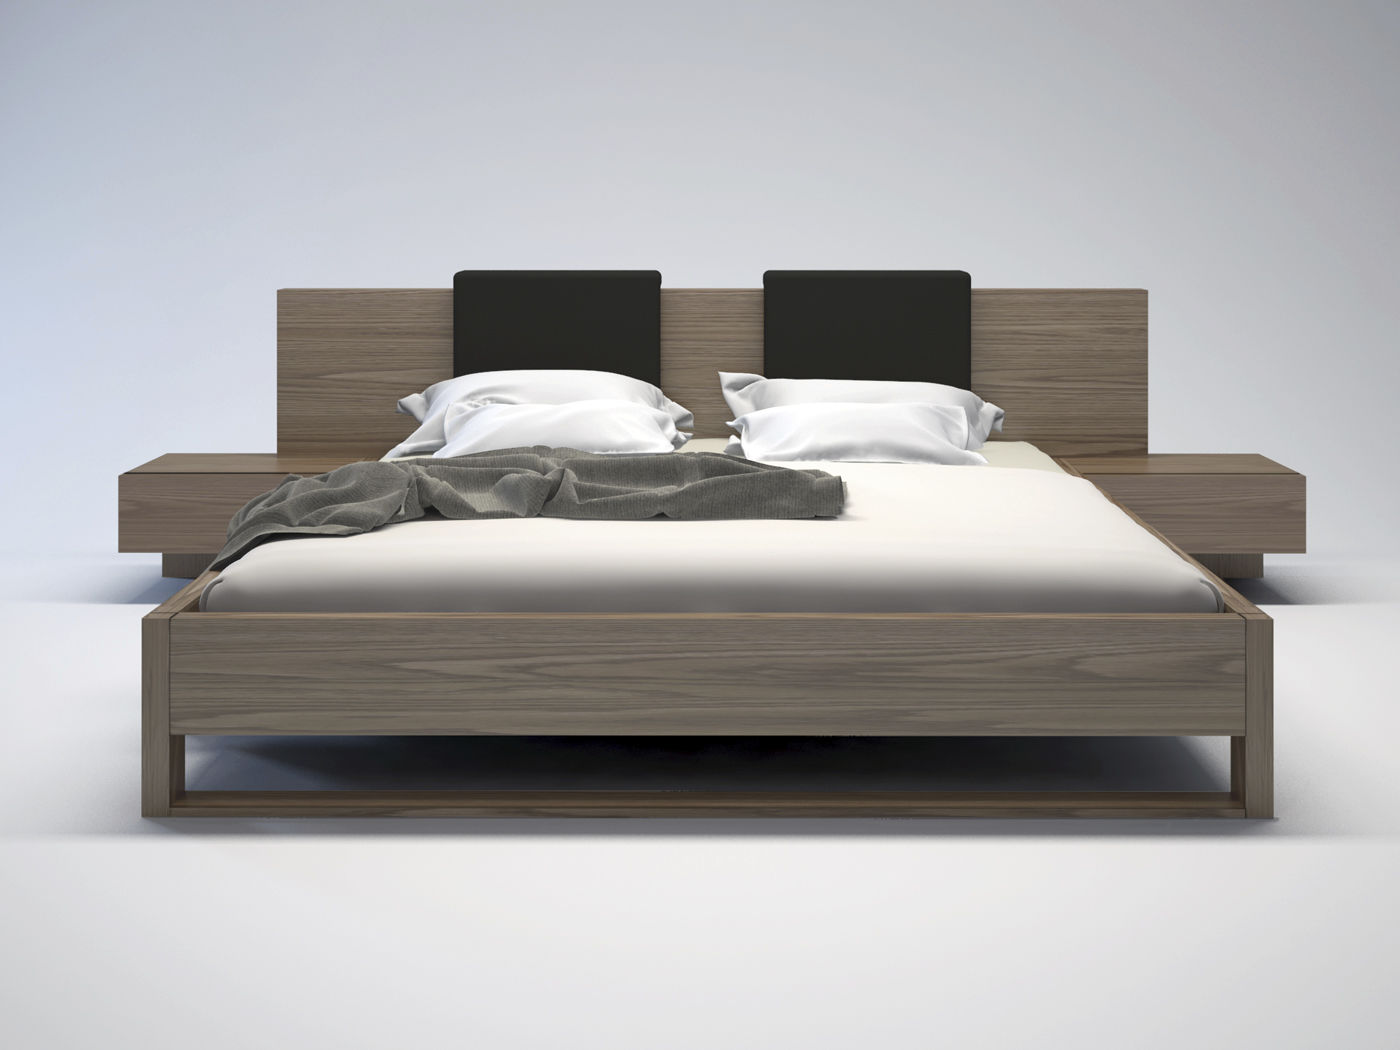 double bed  contemporary  wooden  monroe  king  modloft -  double bed  contemporary  wooden monroe  king modloft